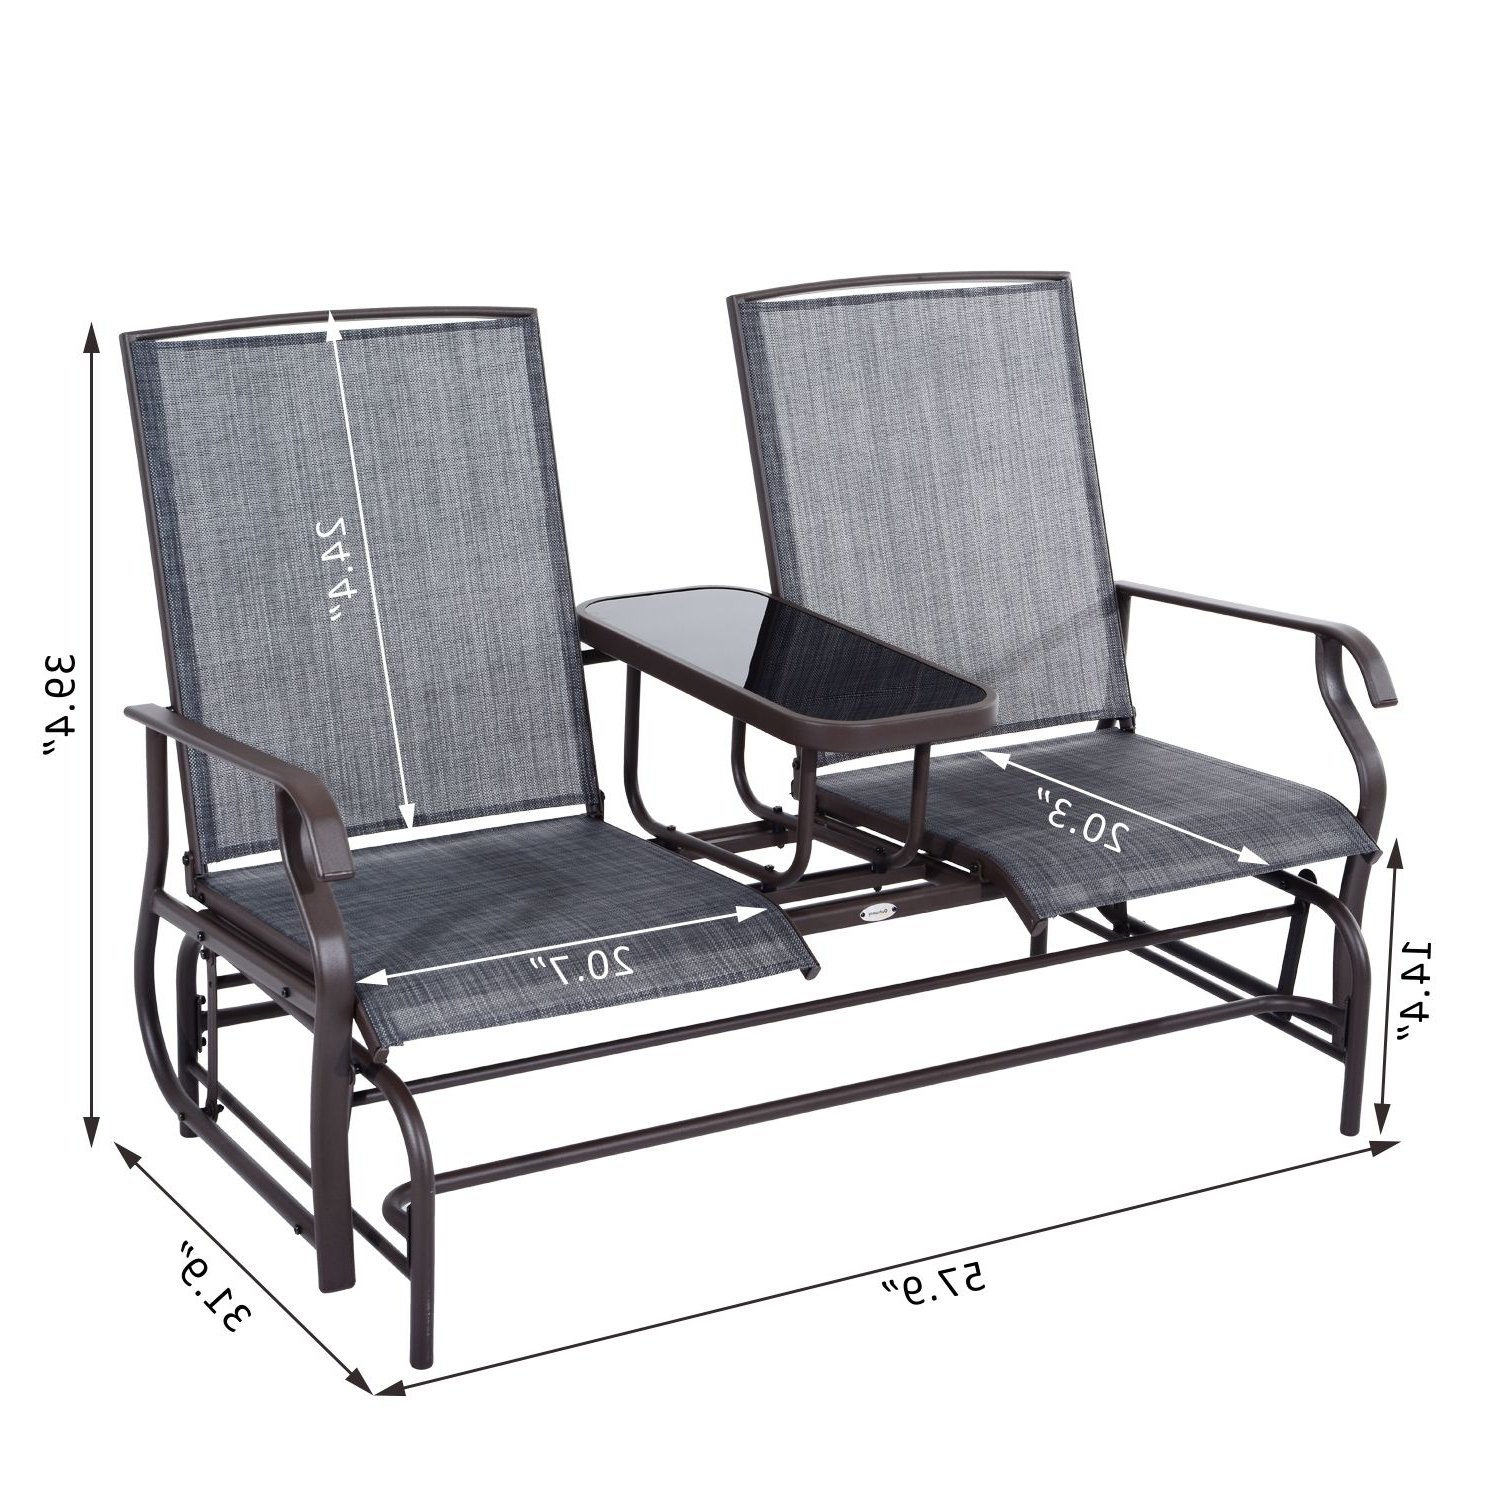 Most Recently Released 2 Person Loveseat Chair Patio Porch Swings With Rocker Regarding Patio Glider Rocking Chair Bench Loveseat 2 Person Rocker (View 16 of 25)